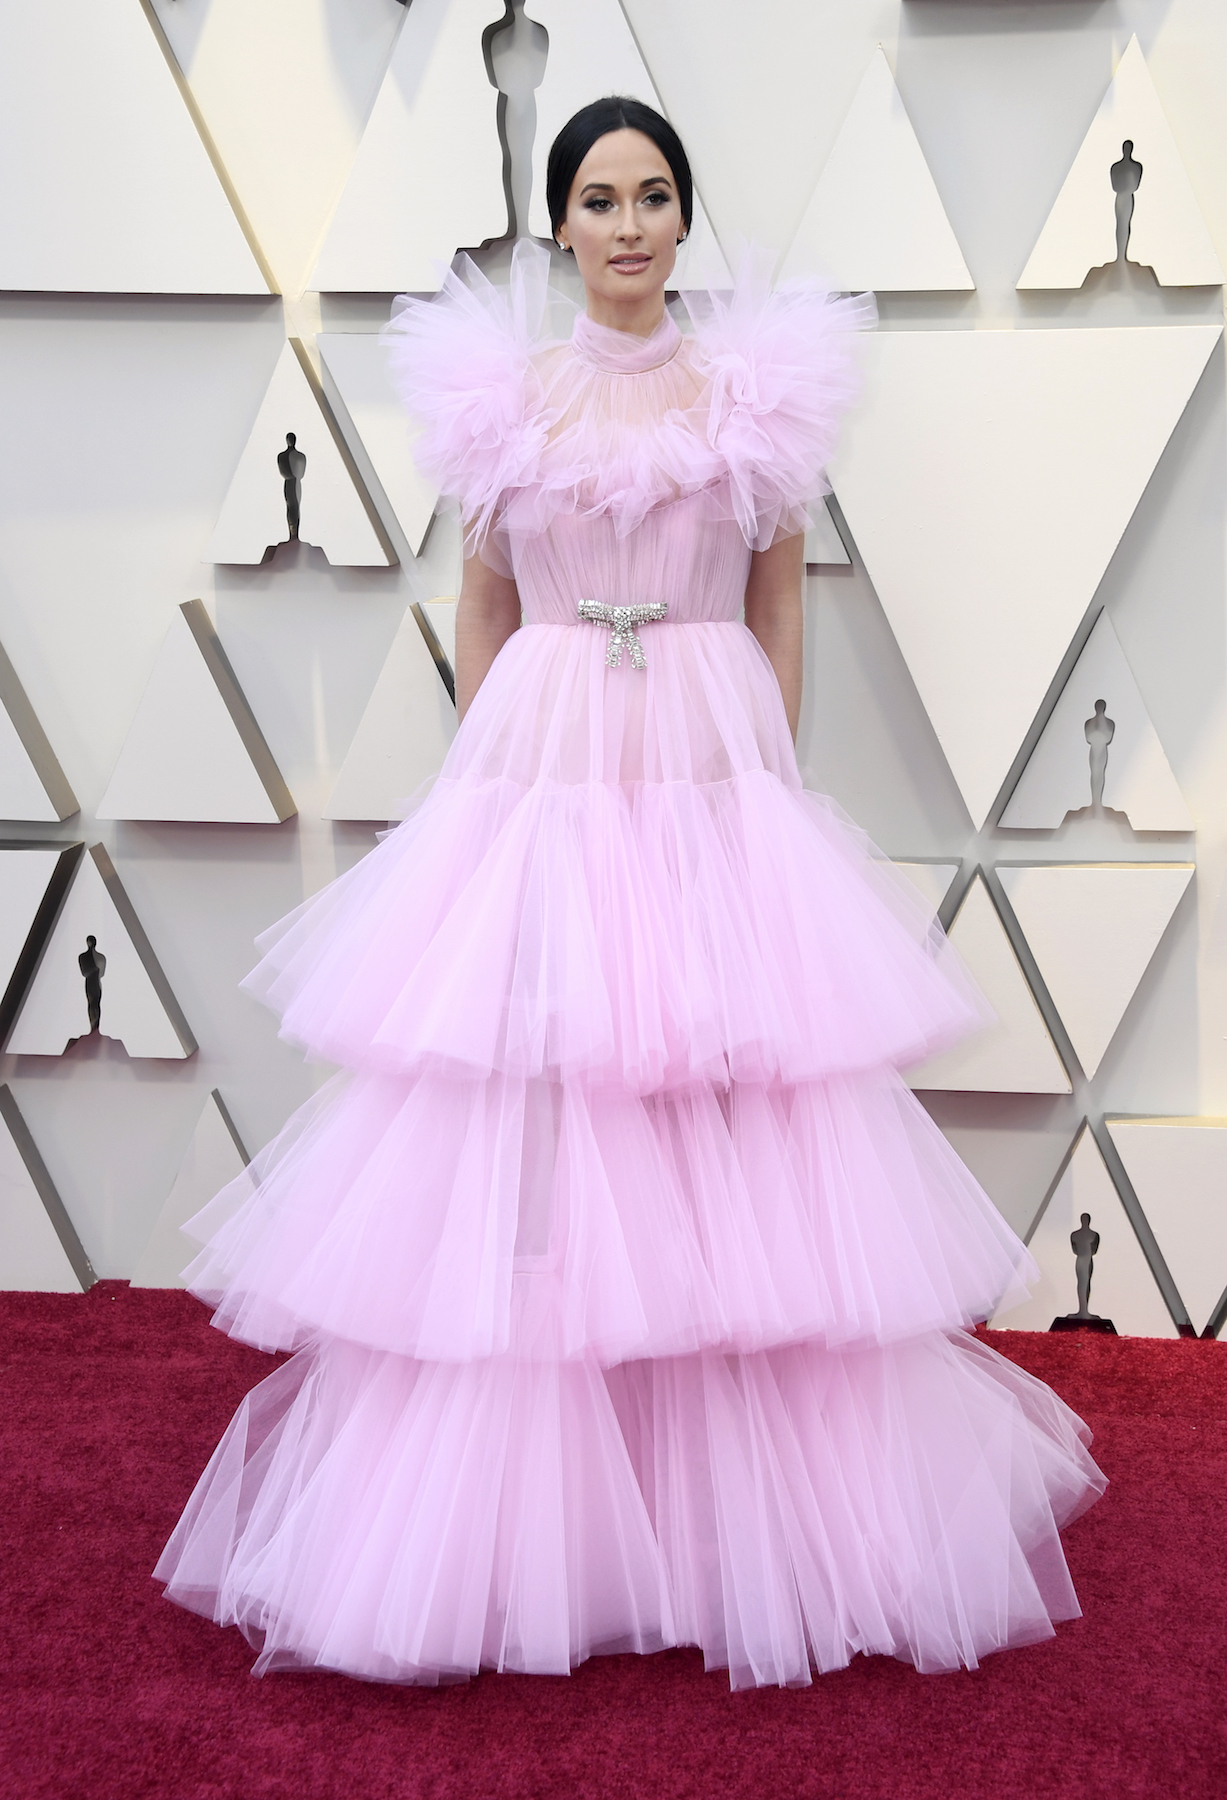 Oscars Pink Trend 2019, Kacey Musgraves pink tulle gown